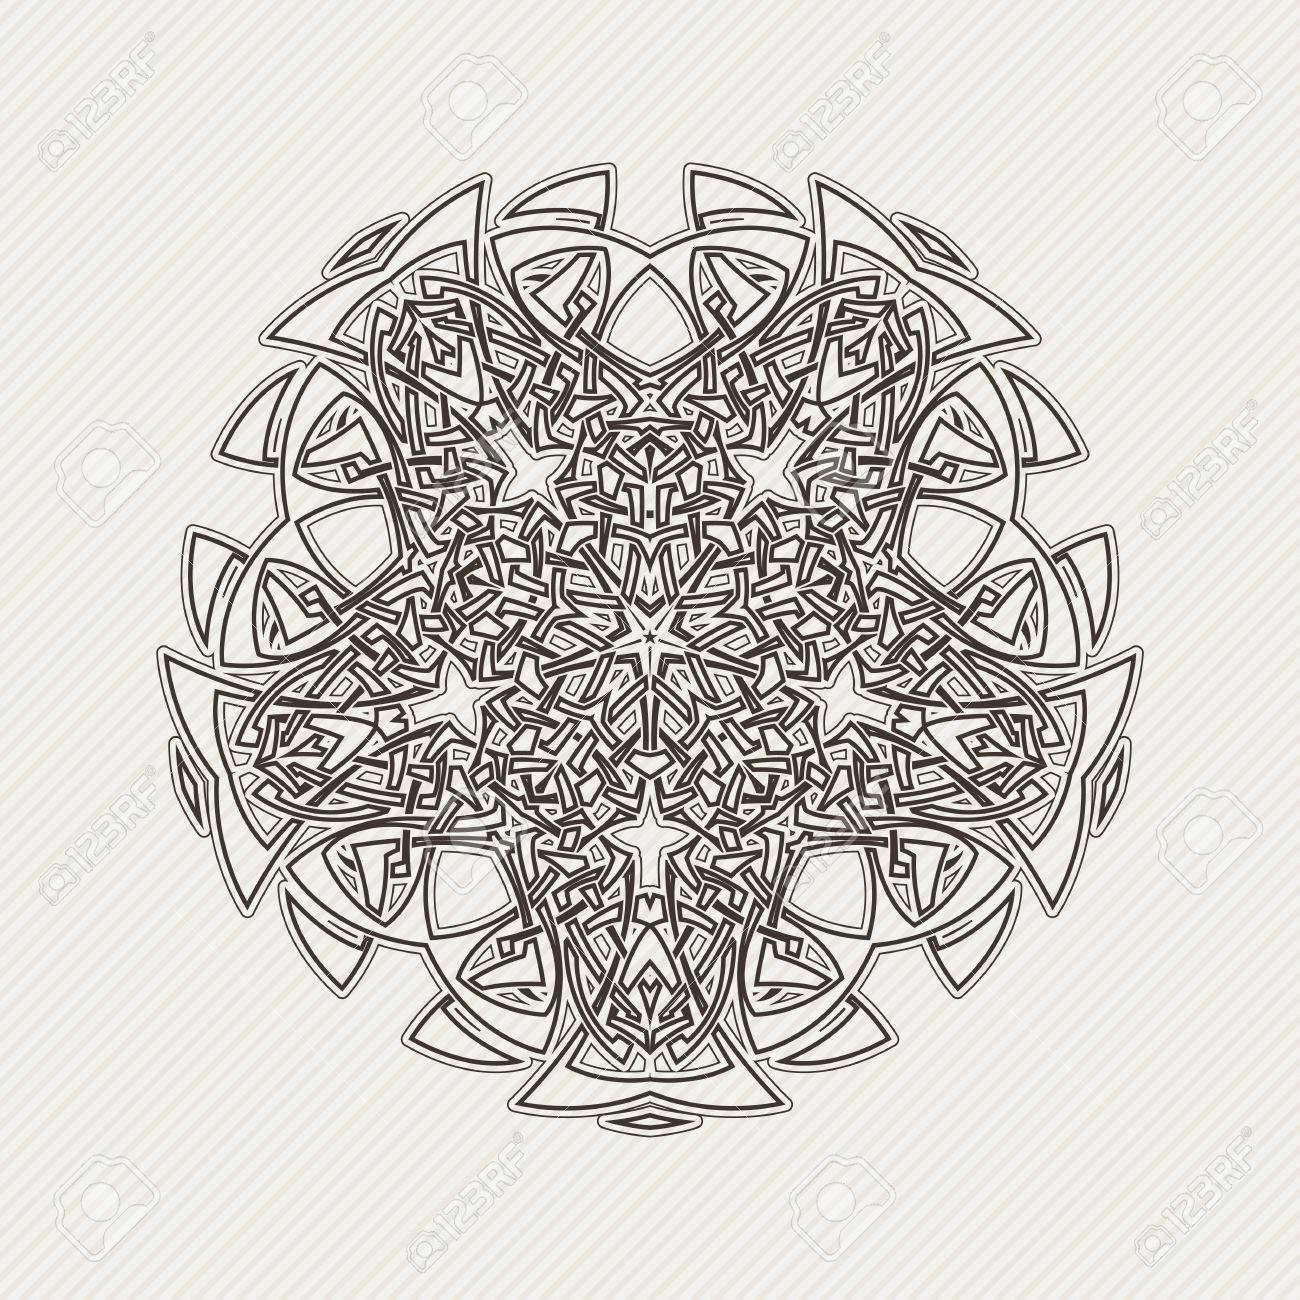 Gothic Lace Tattoo Celtic Weave With Sharp Corners The Circular Pattern